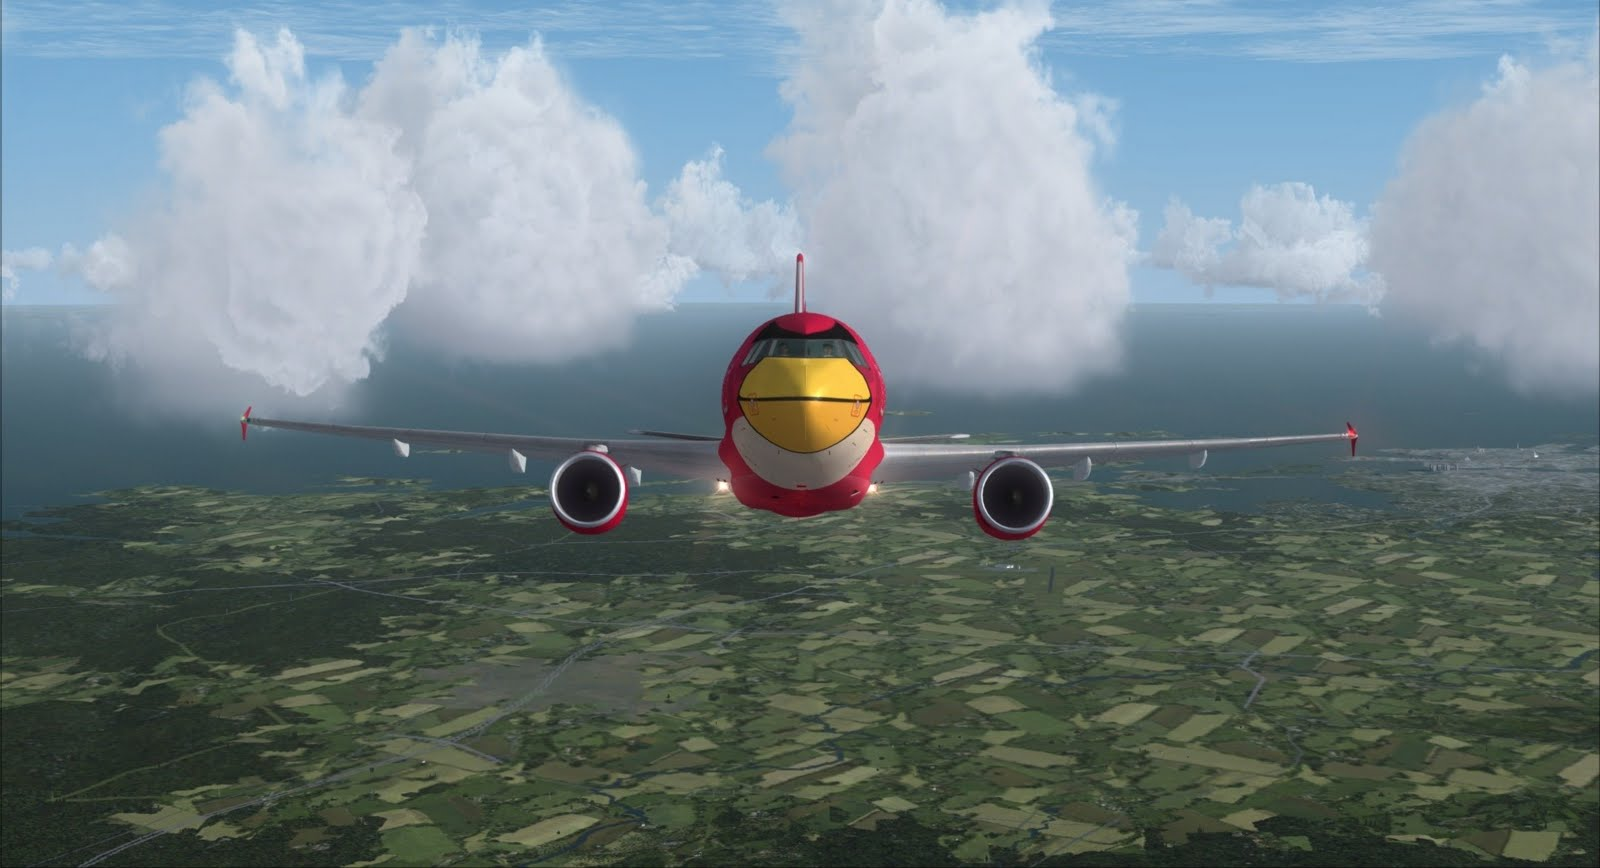 Free Animated Wallpaper Software Angry Birds Airplane Images Amp Video